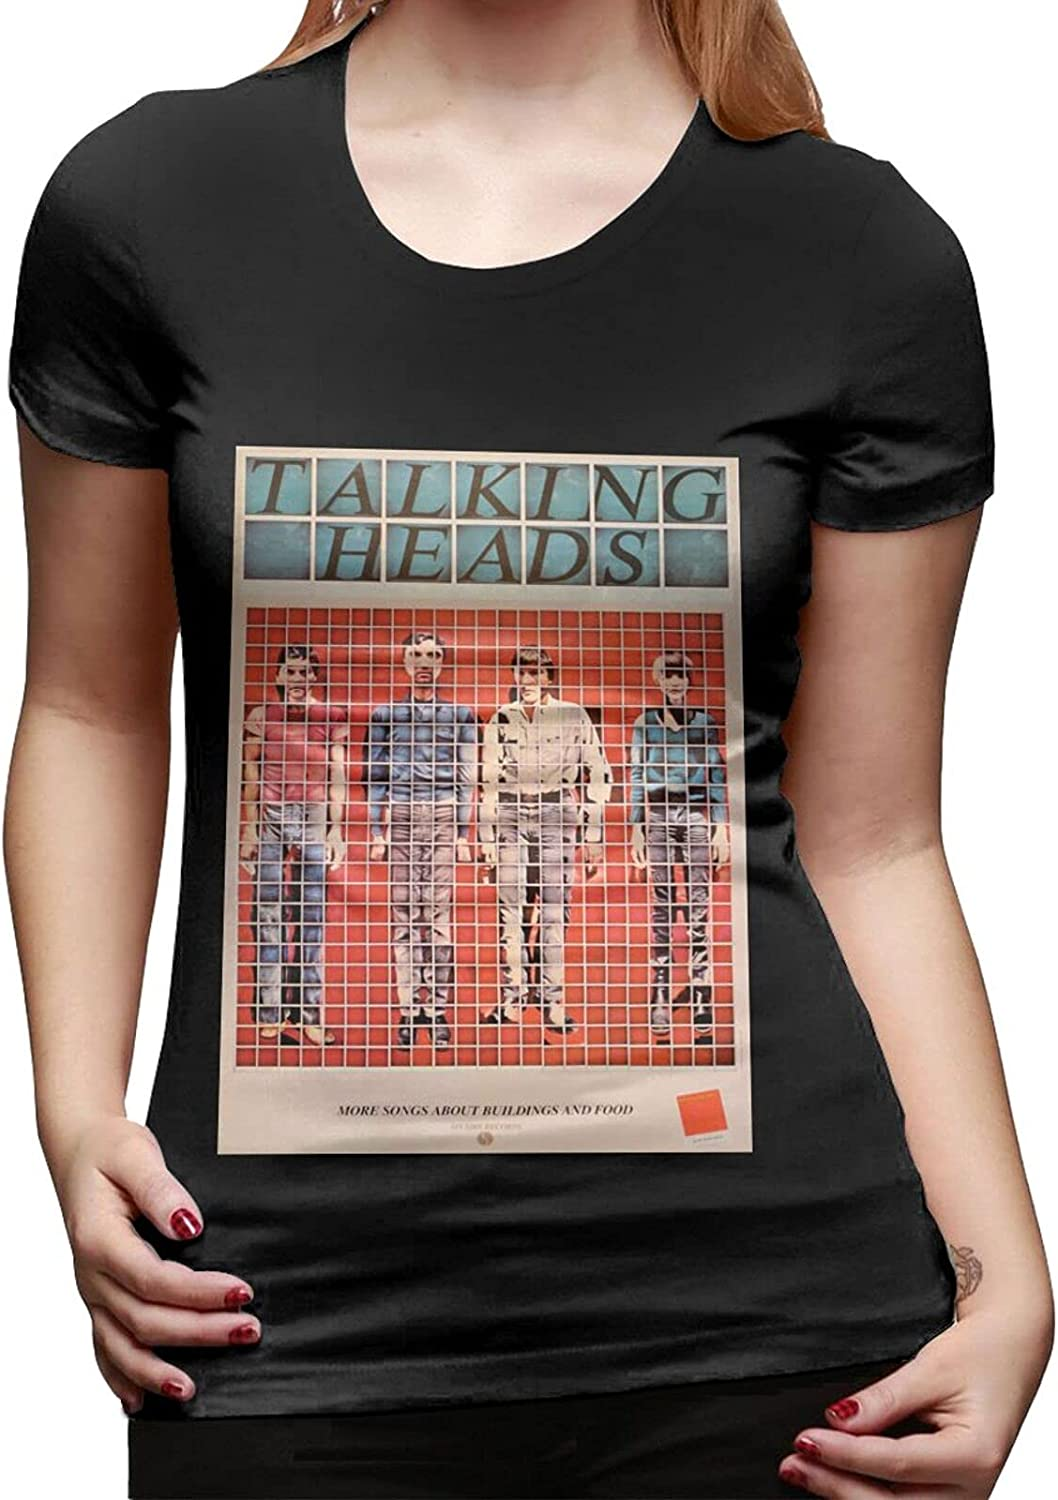 Talking Heads More Songs About Buildings and Food T Shirt Female Basic Short Sleeve T-Shirt Round Neck Tops